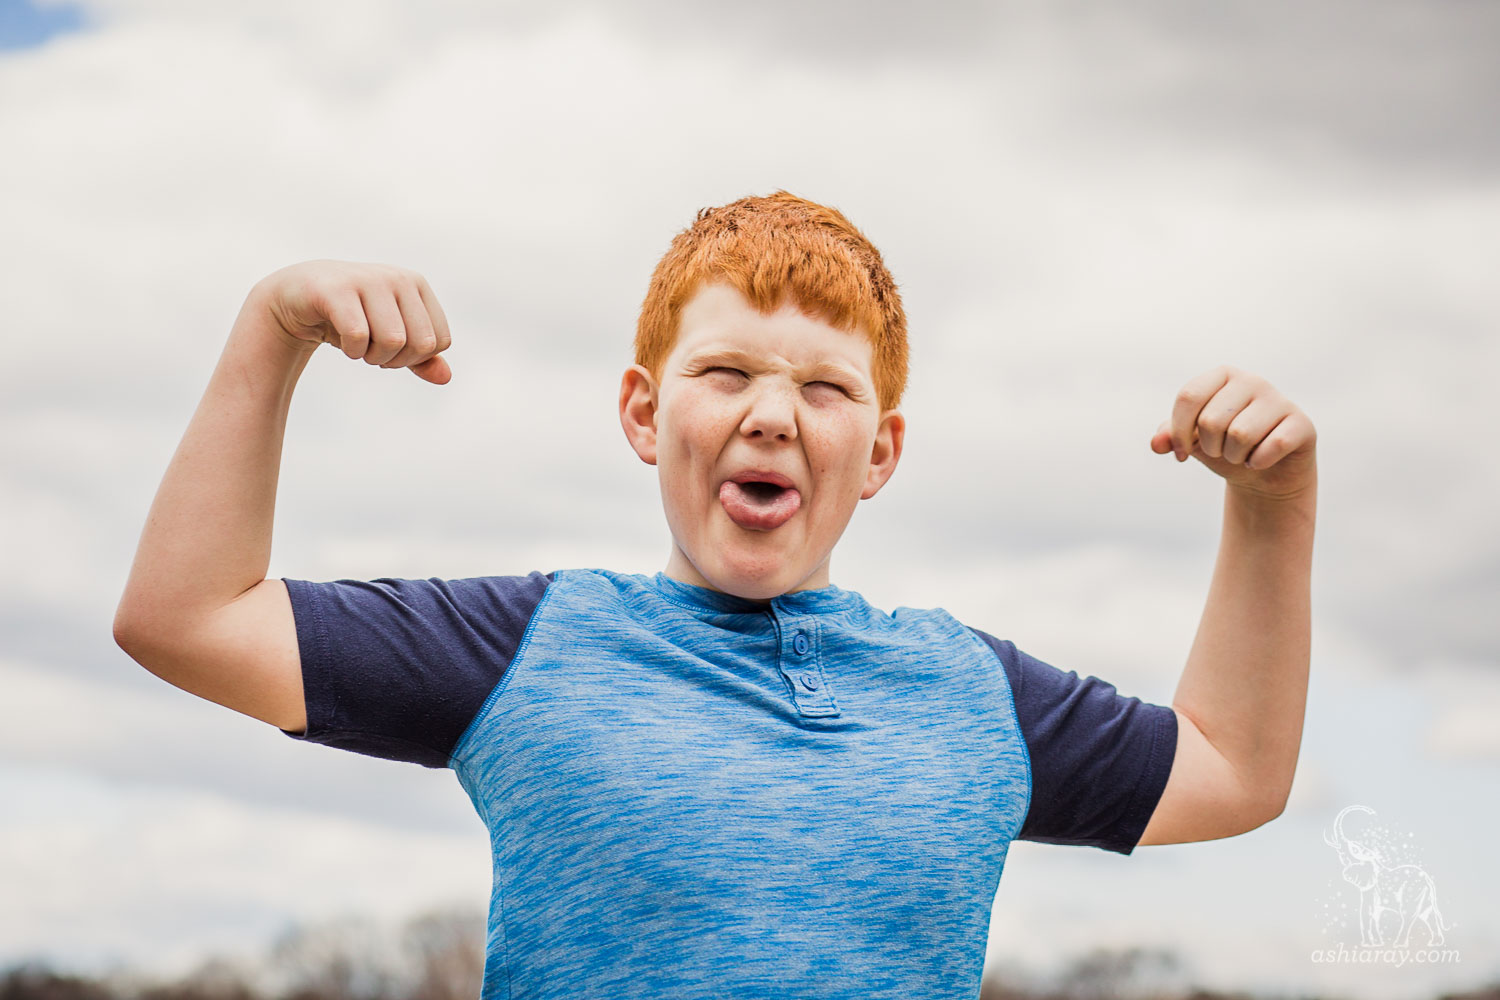 13-year-old boy flexes his muscles and makes silly faces